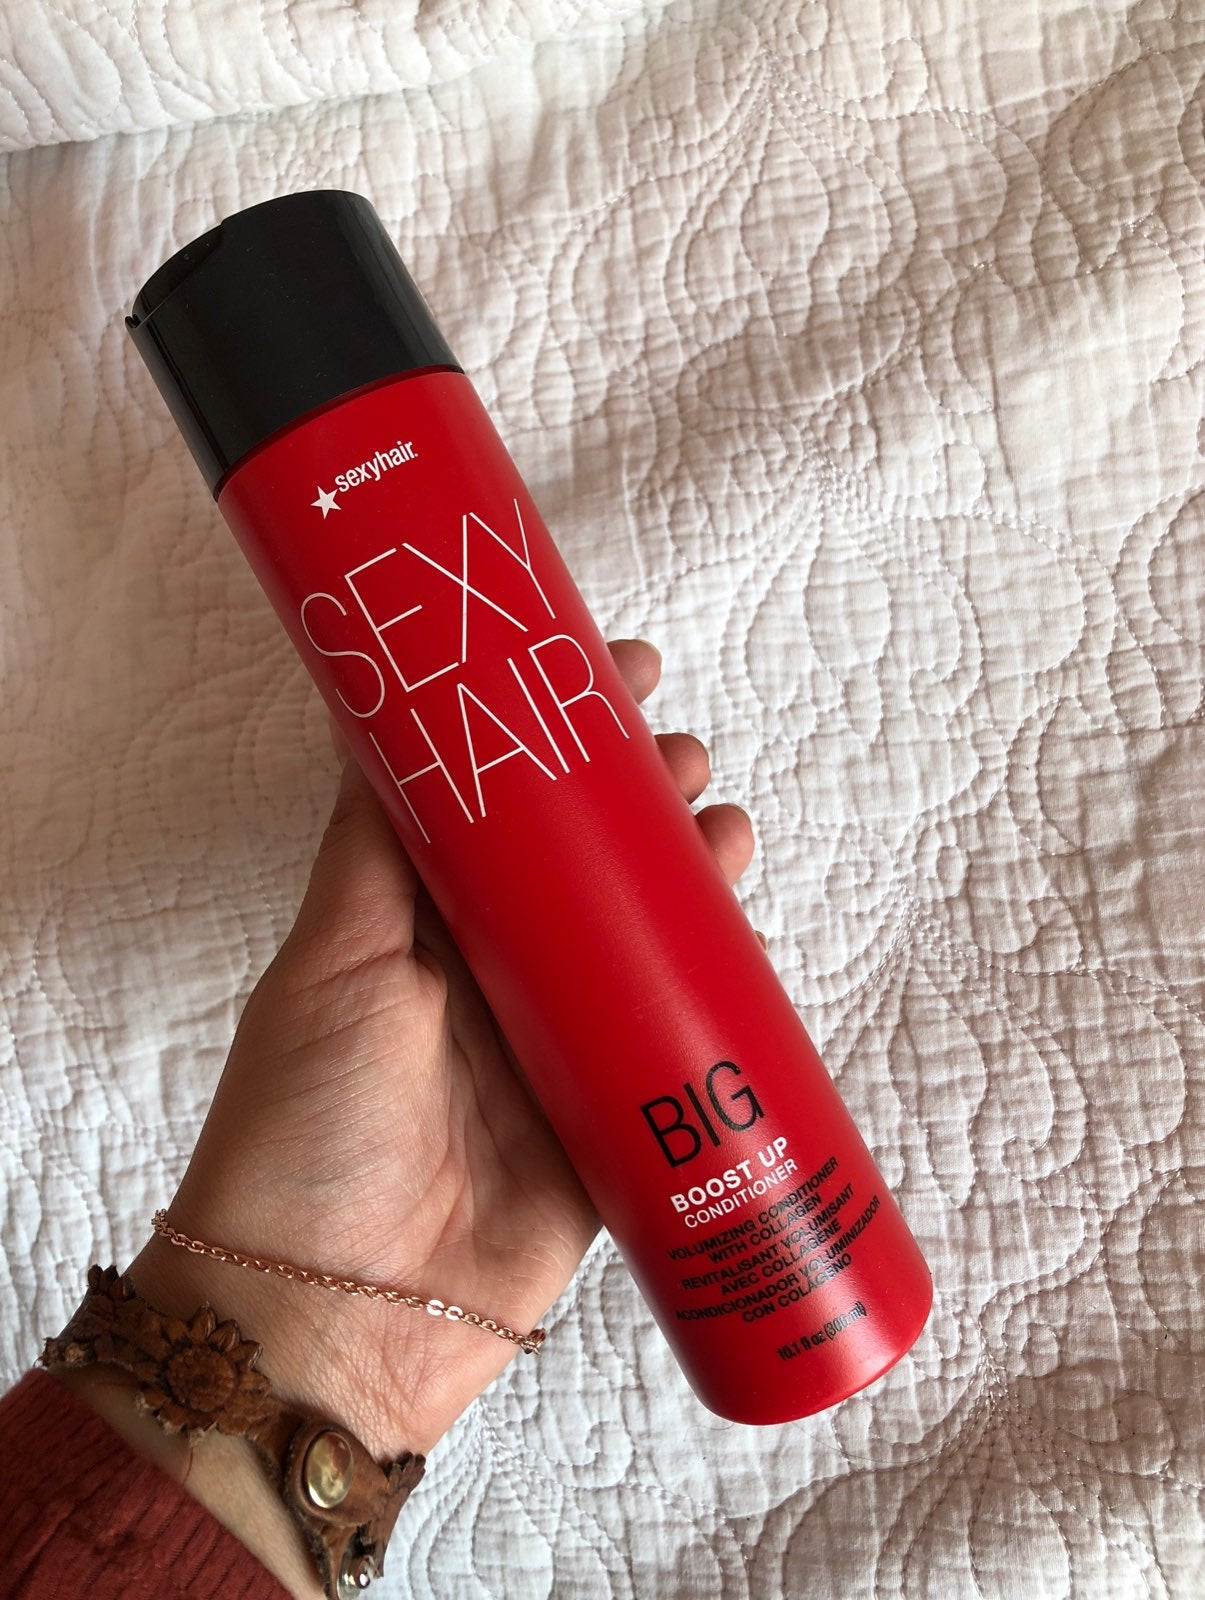 SEXY HAIR SHAMPOO AND CONDITIONER